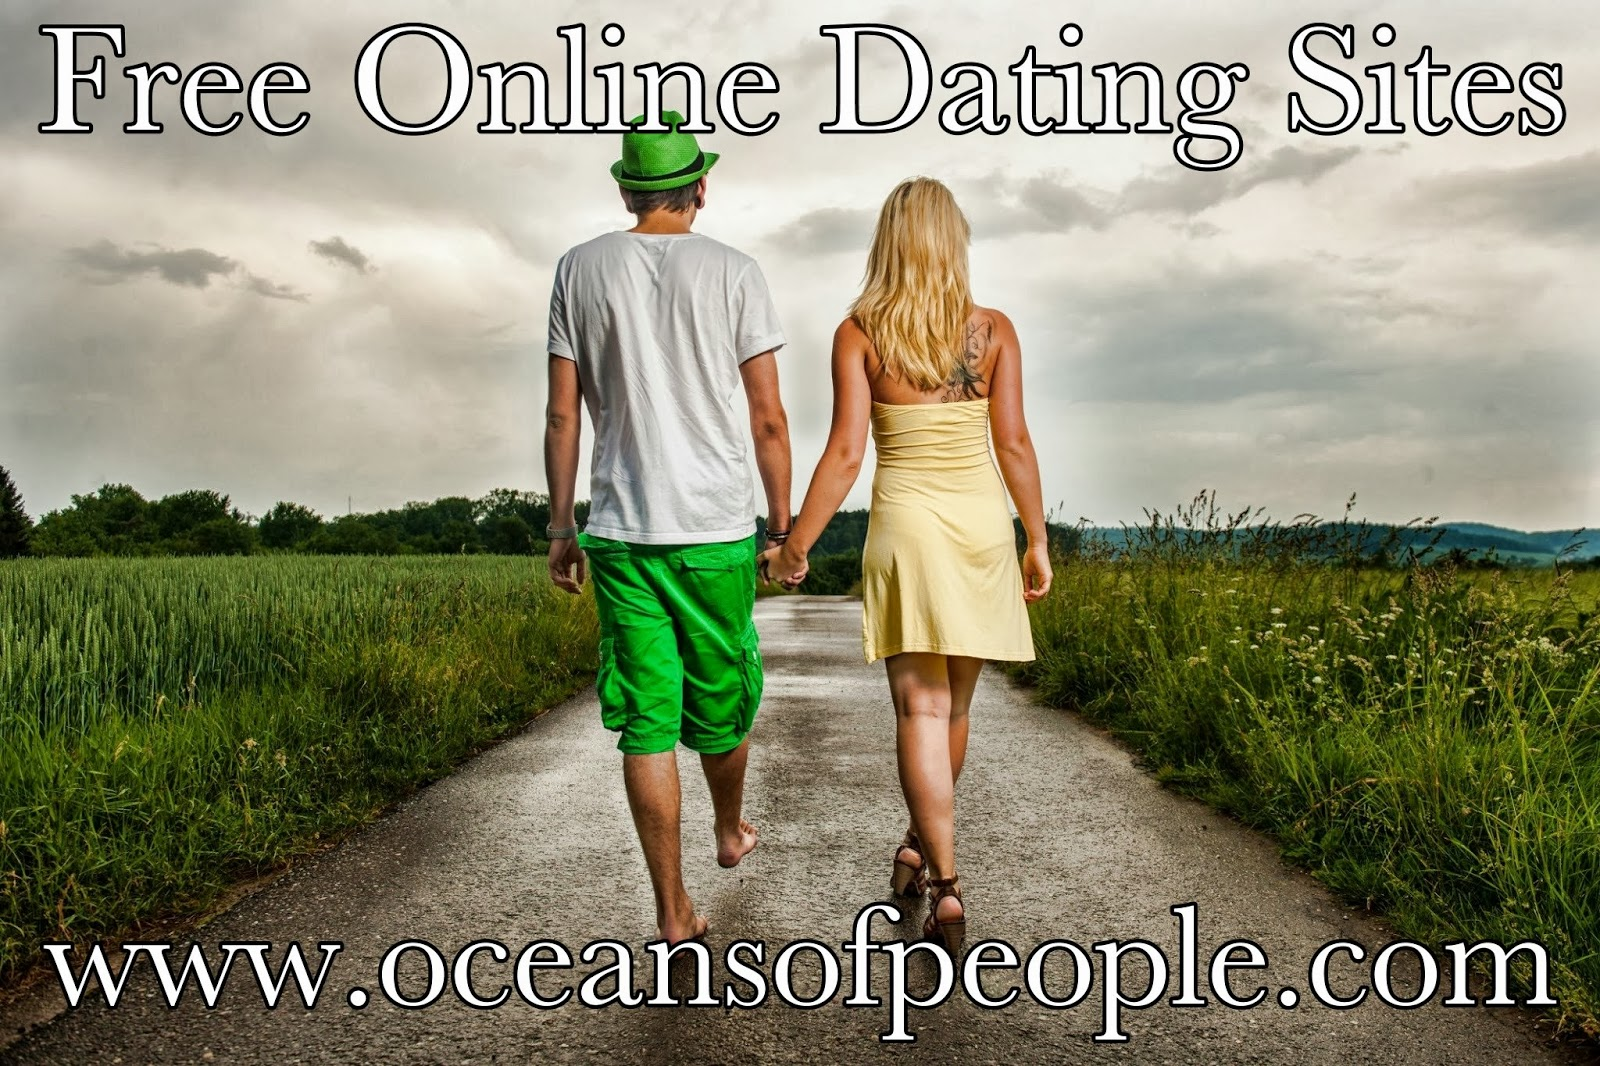 Some free online dating sites